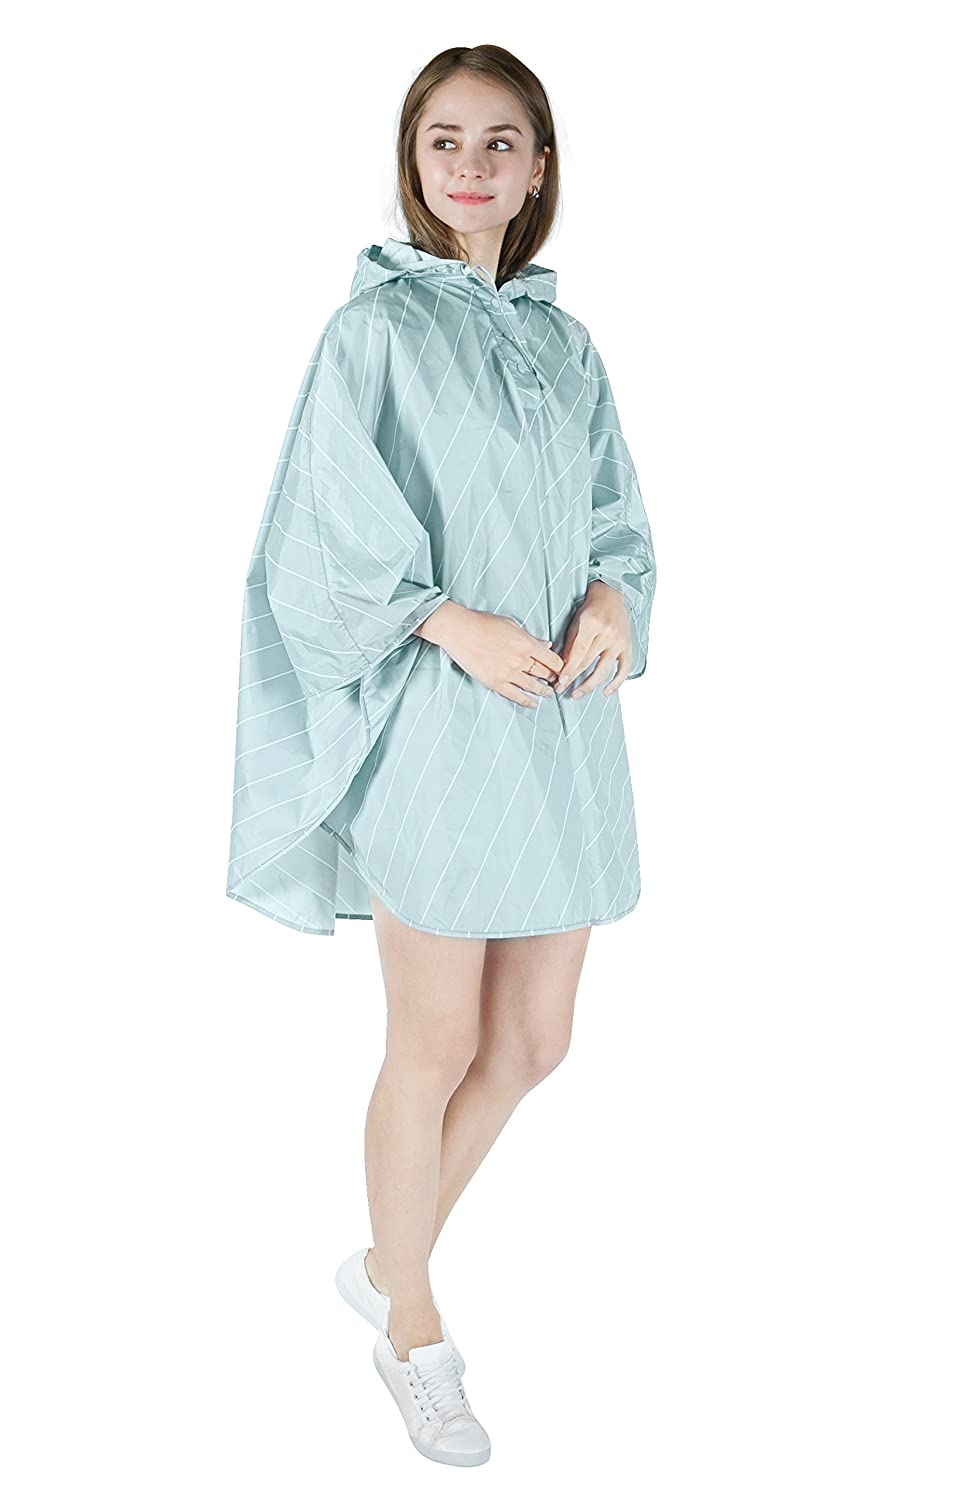 Aircee Lady's Kid rain Coat Hooded Waterproof Raincoat Poncho Packable Batwing Sleeve Adult Blue)